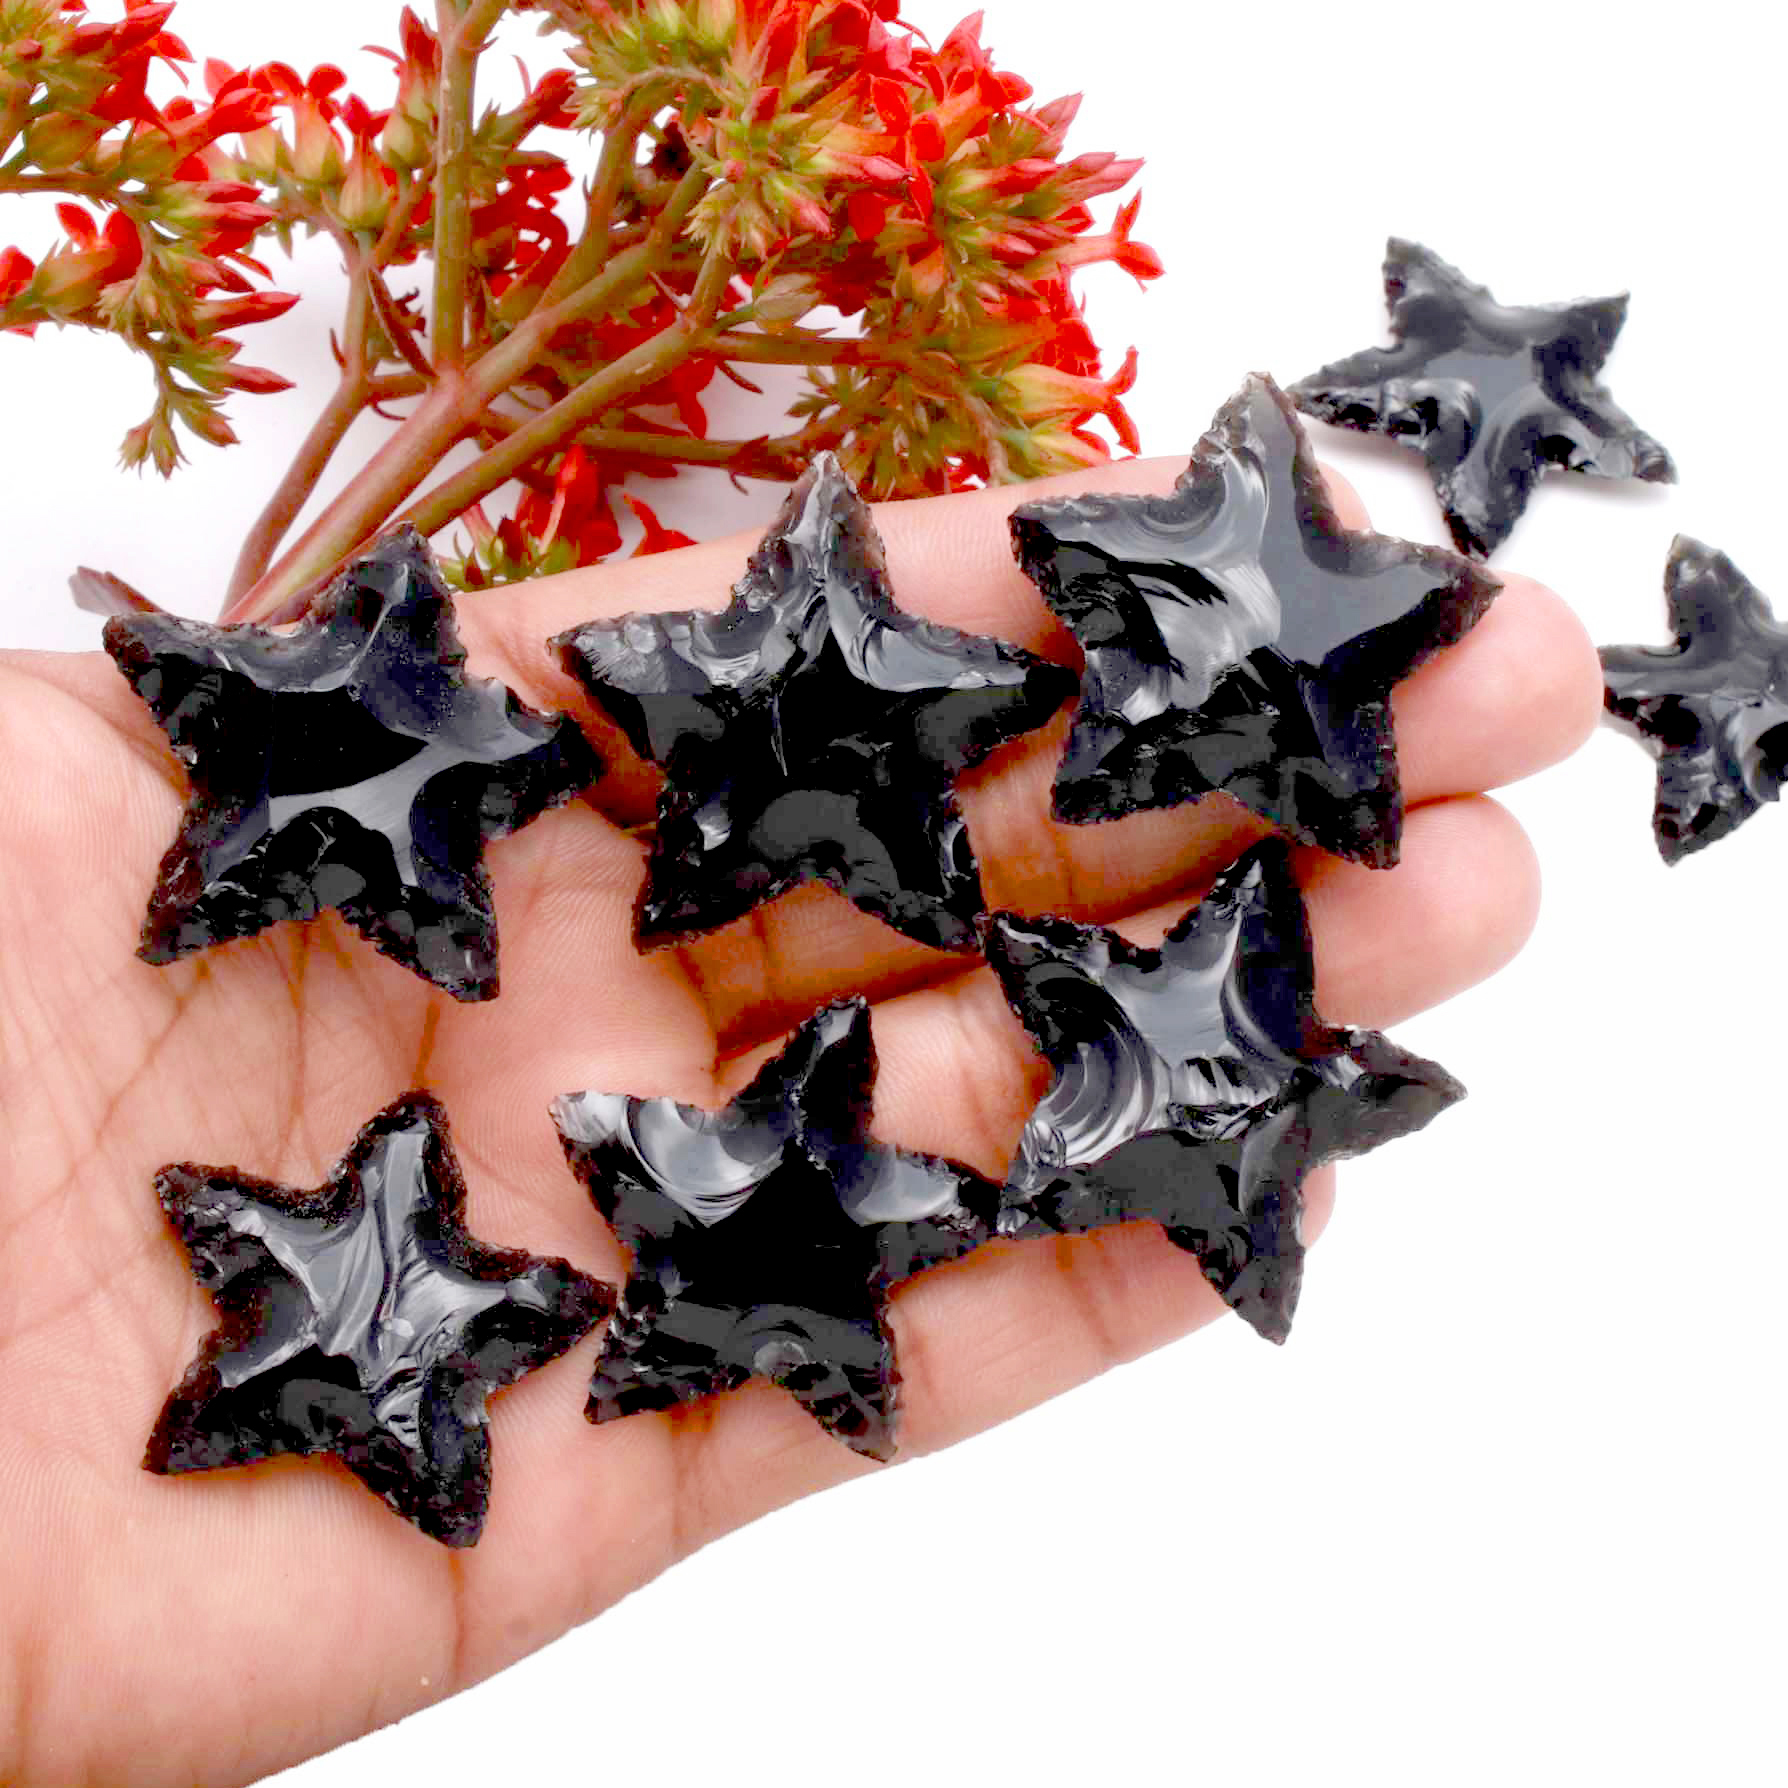 Black Obsidian Star Carving